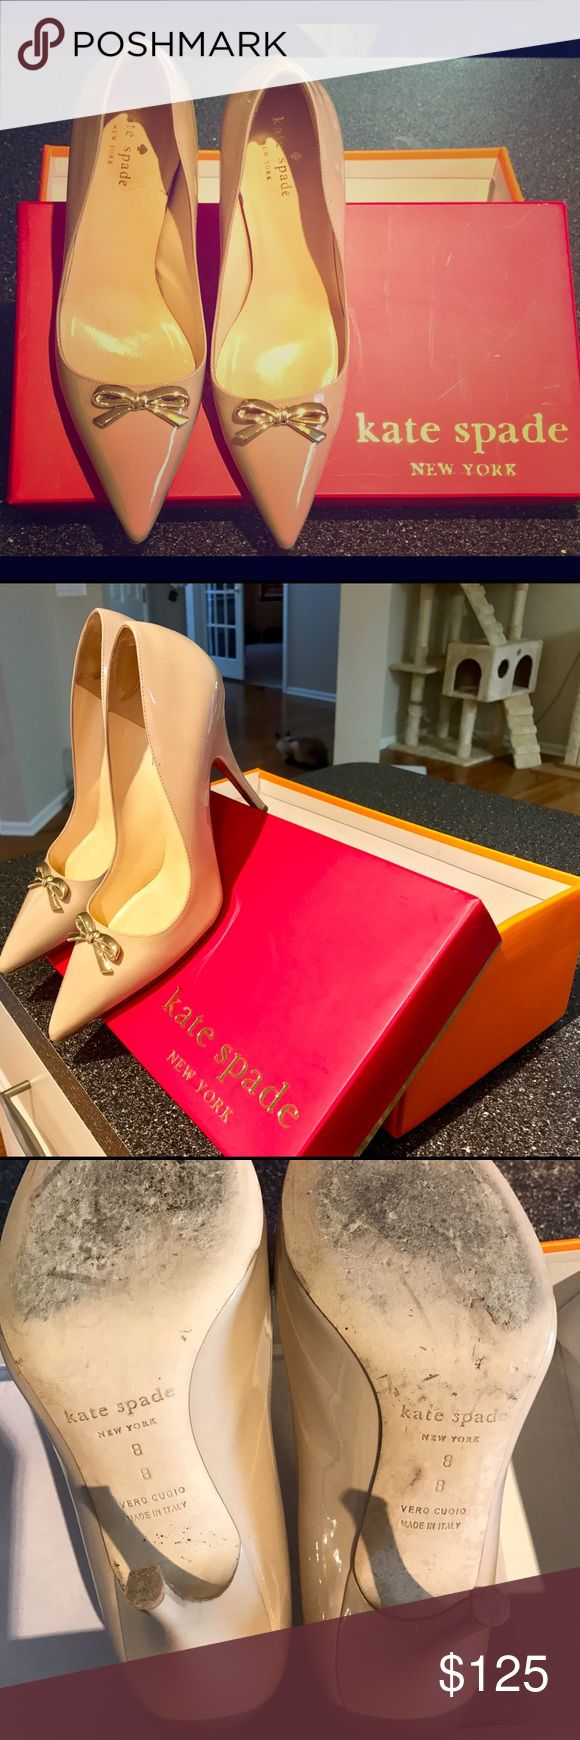 Kate Spade nude pumps size 8 These beauties were purchased from Nordstrom Rack in spring 2015. I wore them for all 2-3 hours. They have otherwise been in the box. The box is the original-to-me but is not the box original to the shoe (box for sz 8 Grenadine, and they aren't the Grenadine shoe).   They have some minor scuffing on the bottom (see above) and the gel backing I put in to keep the shoe from sliding off.   Smoke-free, pet friendly home, but these have been in their box in a closet…